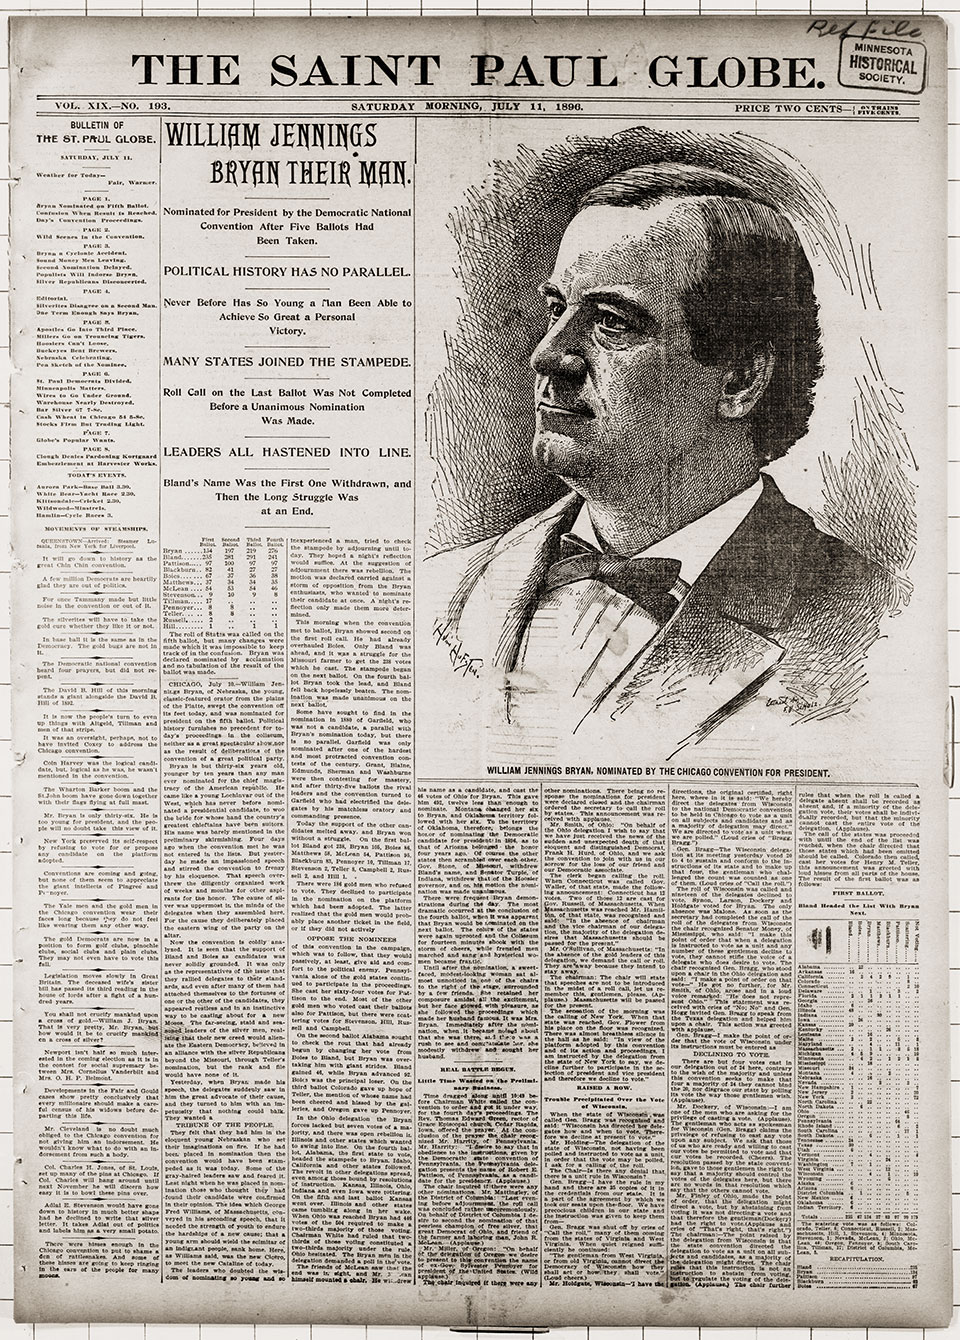 Clipping of an 1896 newspaper article from the Library of Congress